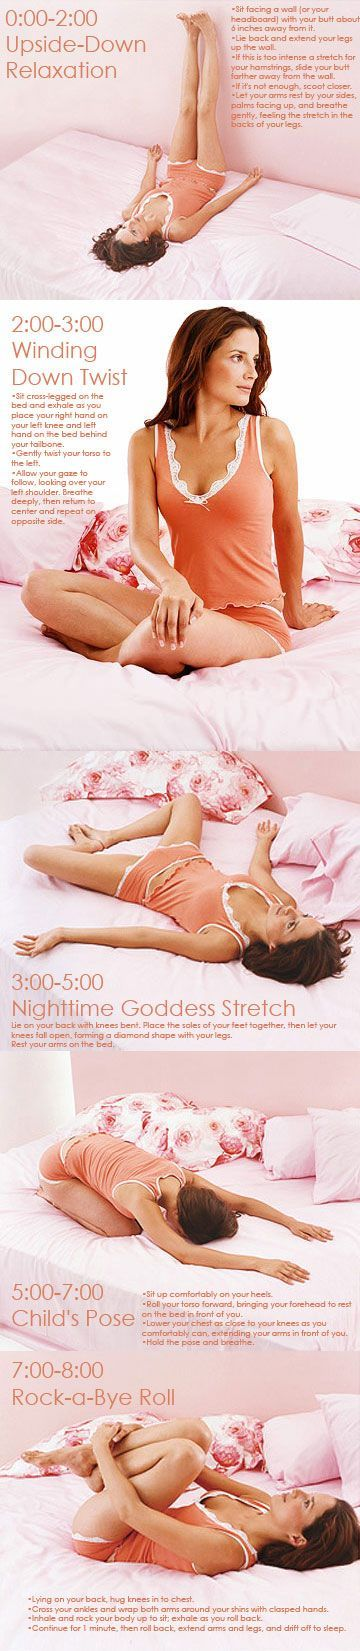 8-Minute Workout: Yoga for Better Sleep Forget counting sheep. Ease your way into dreamland with this five-move yoga routine from Edward Vilga, creator of the DVD Yoga in Bed: 20 Asanas to Do in Pajamas (yogainbeddvd.com, $19.95). The moves will relax your body and mind, but the best part is that you can do them all in bed!